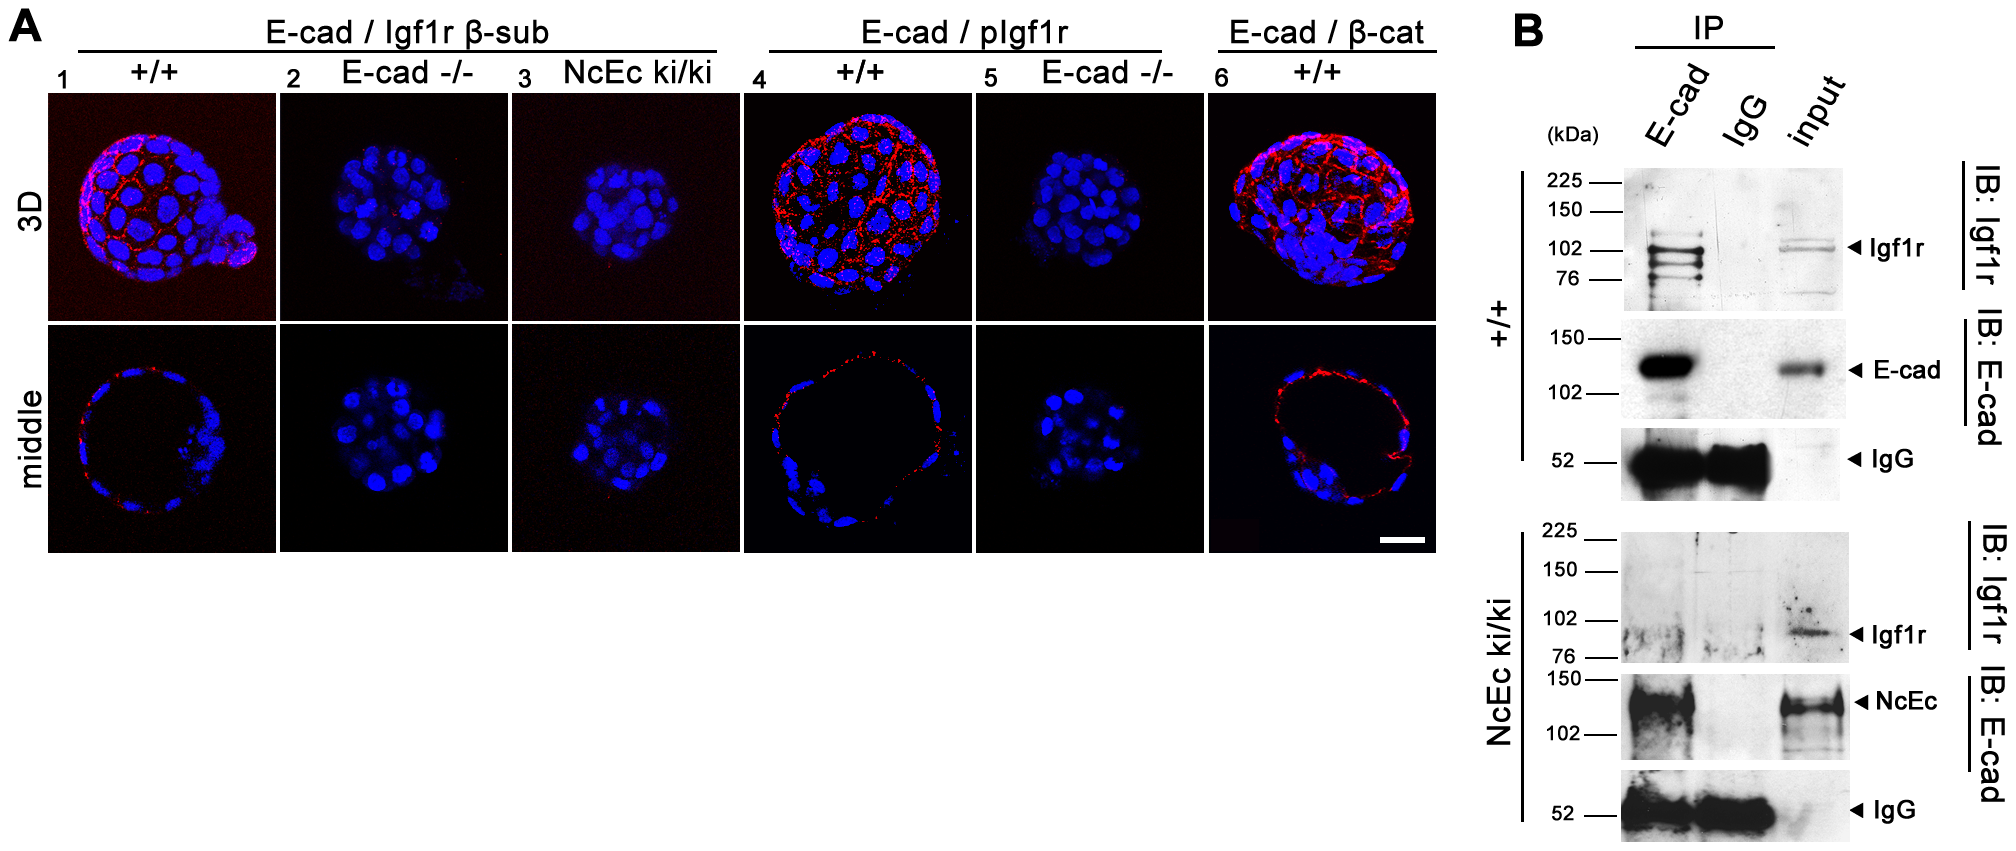 E-cad interacts with Igf1r and increases receptor activity in TE cells.